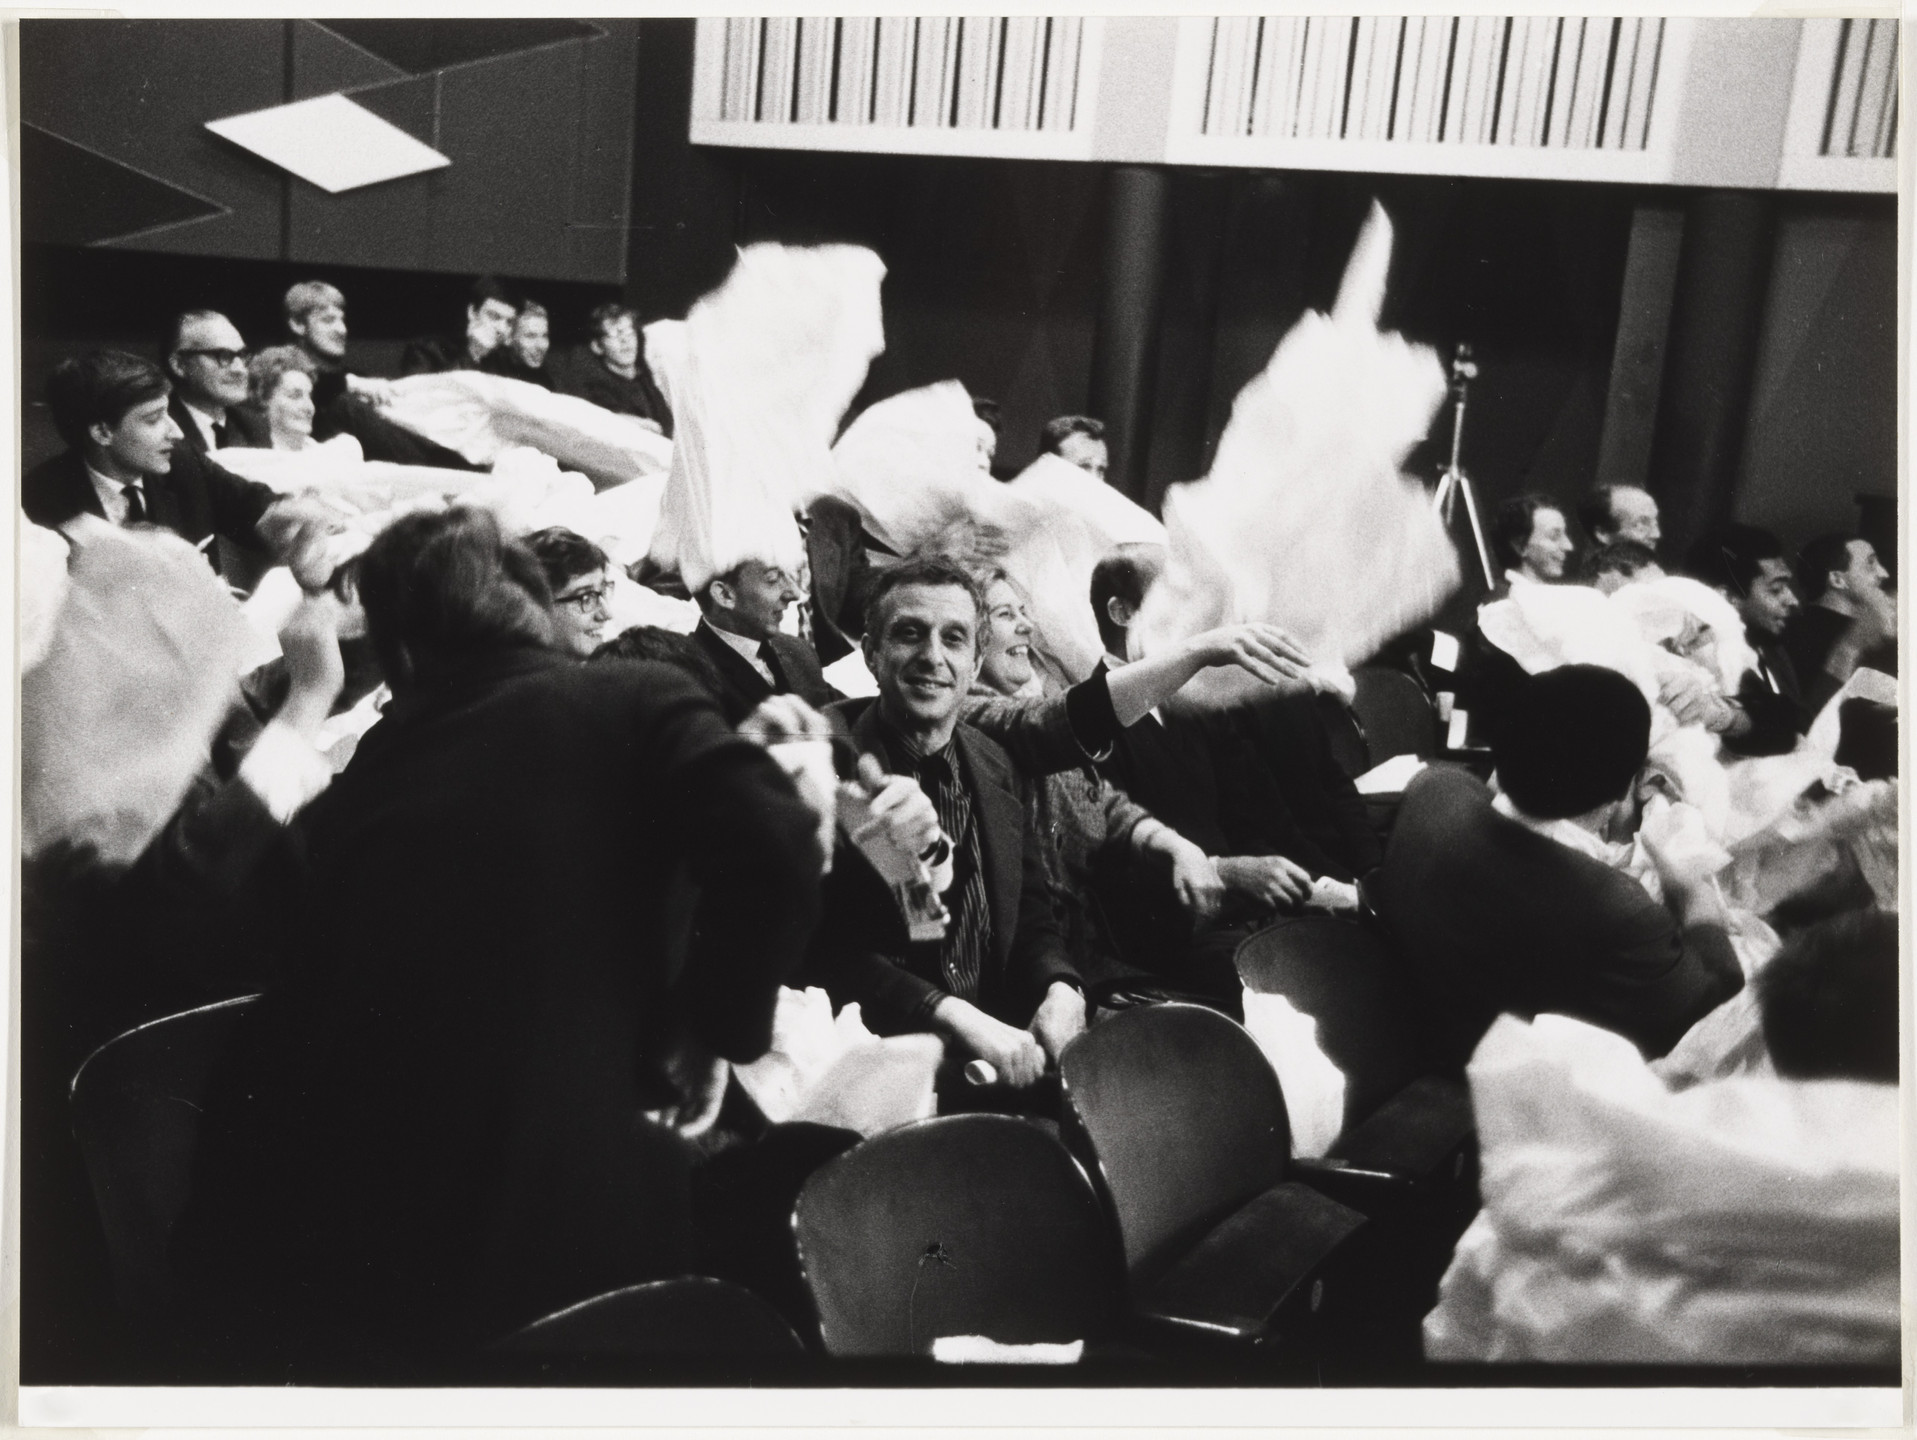 Benjamin Patterson. Audience members participating in Paper Piece (1960), performed during Fluxus Festival/Theatre Compositions/Street Compositions/Exhibits/Electronic Music, Hypokriterion Theater, Amsterdam, June 23, 1963. 1963